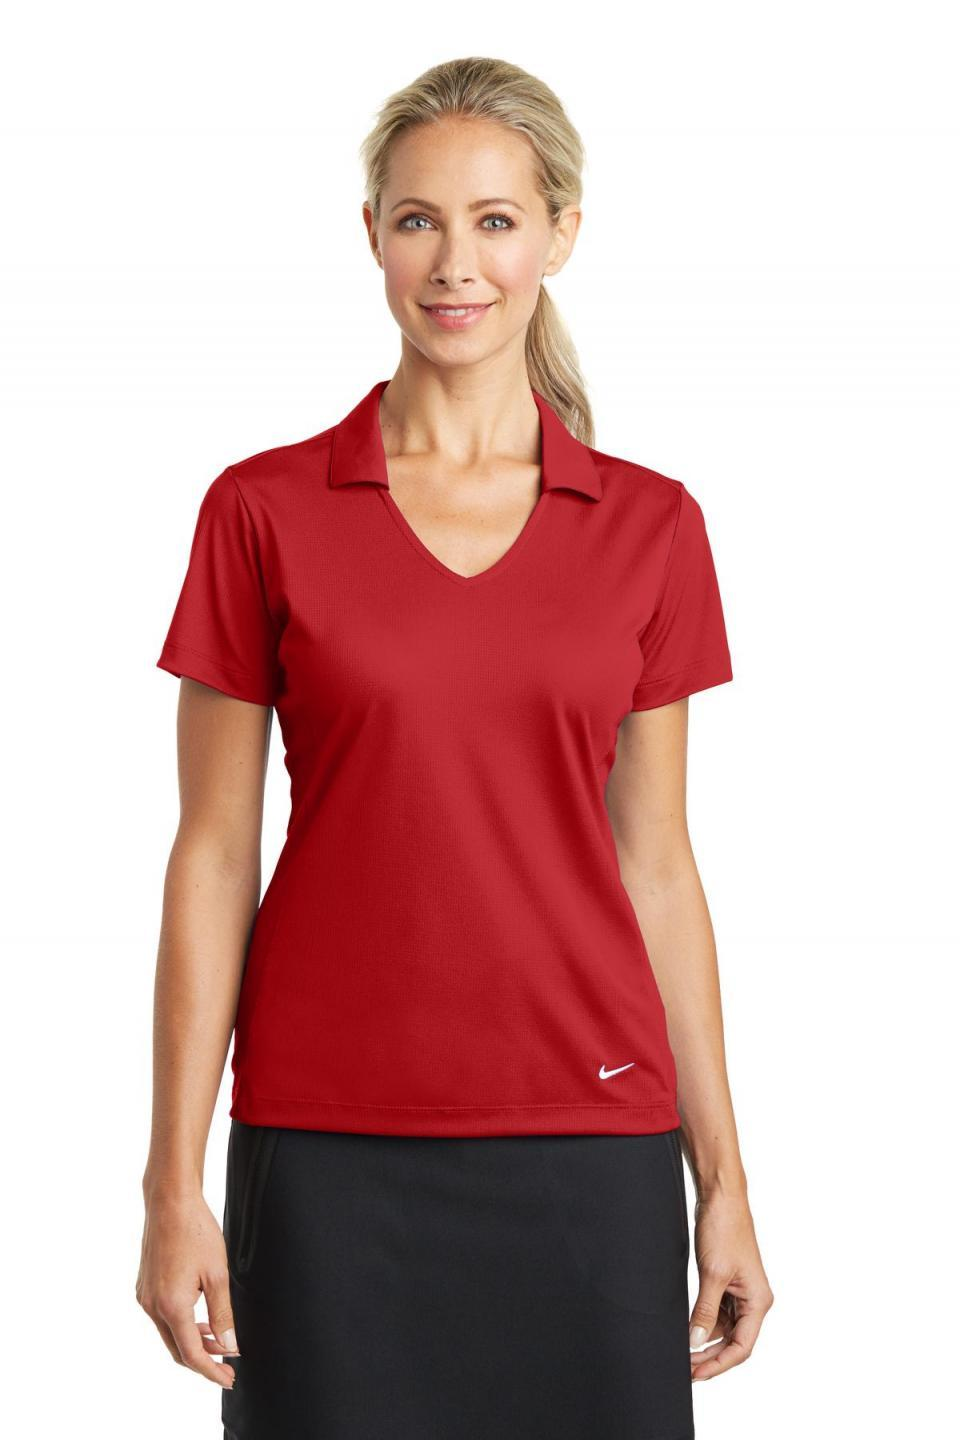 Nike Woman's Dri-FIT Vertical Mesh Polo